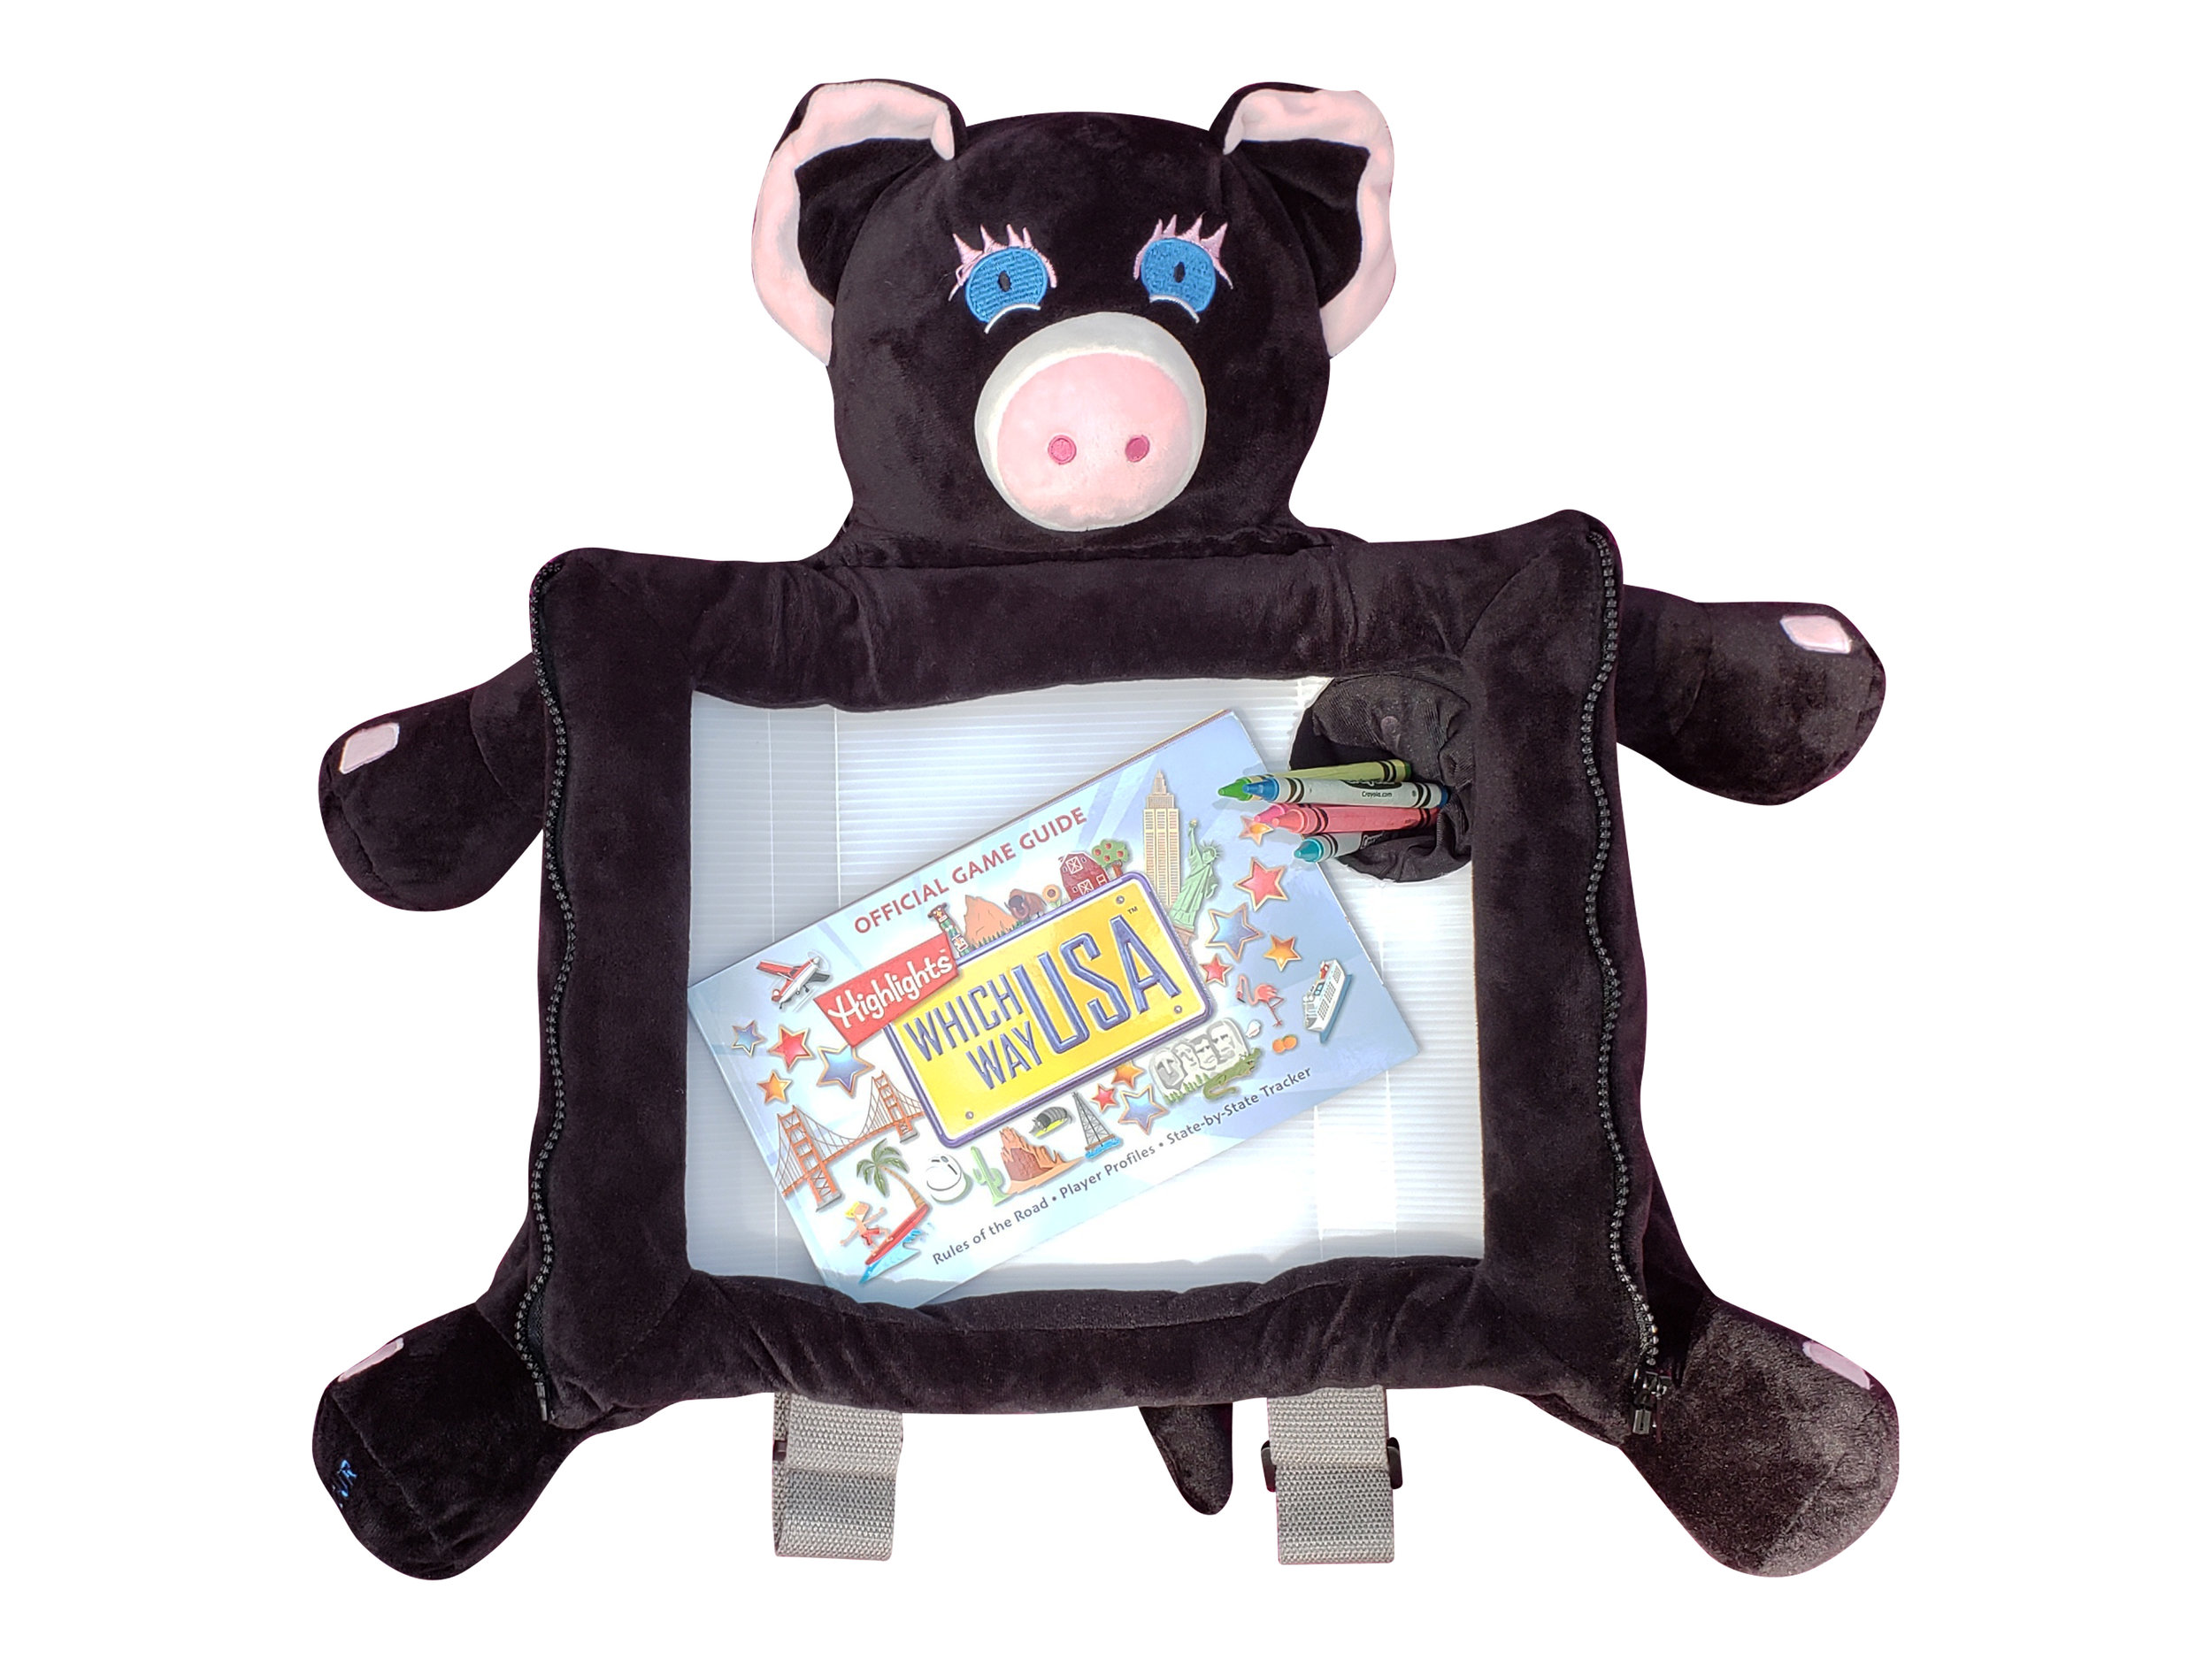 Seymour the Pig Petpak